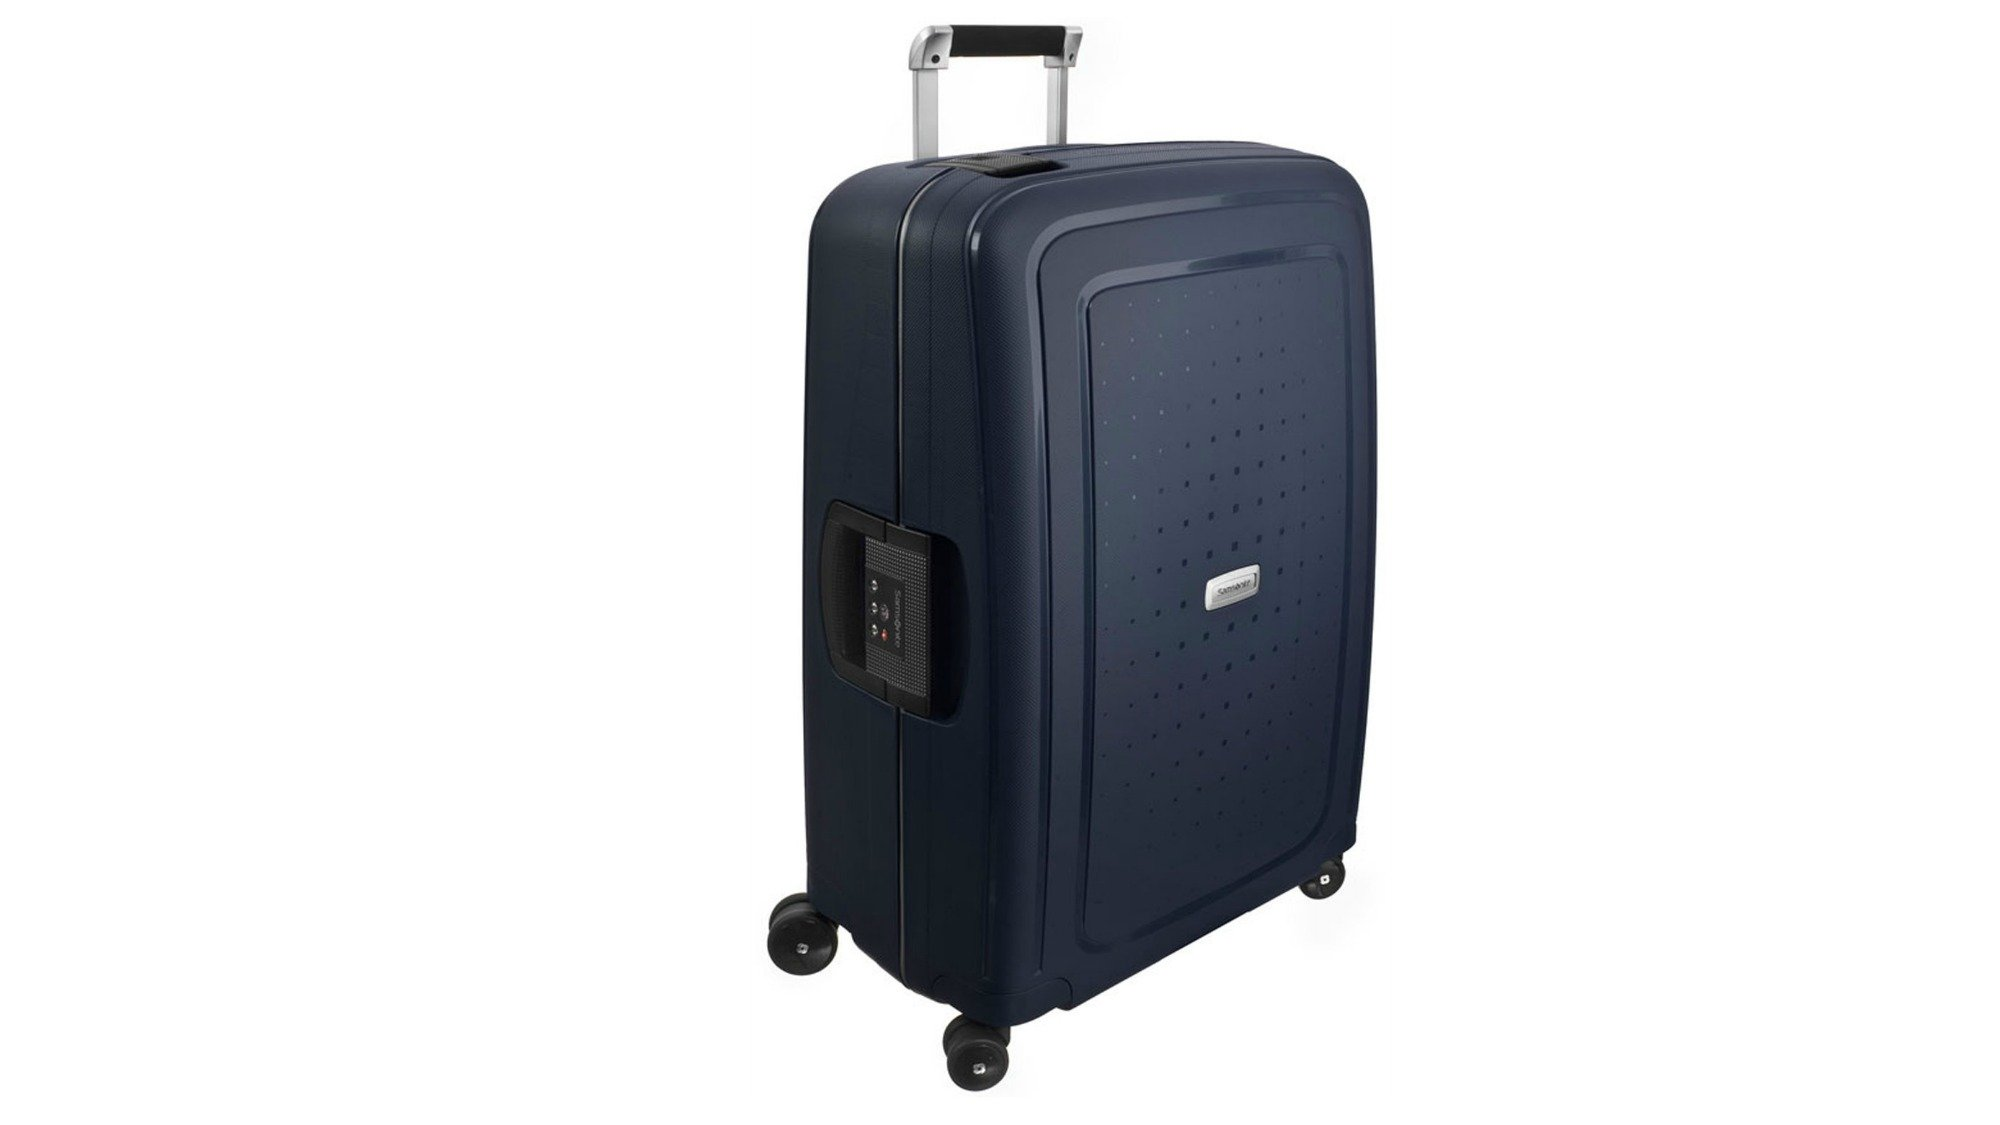 58c4908dcf51 Samsonite s S cure suitcase strikes a good balance of portability and  protection. A waterproof seal keeps the rain out